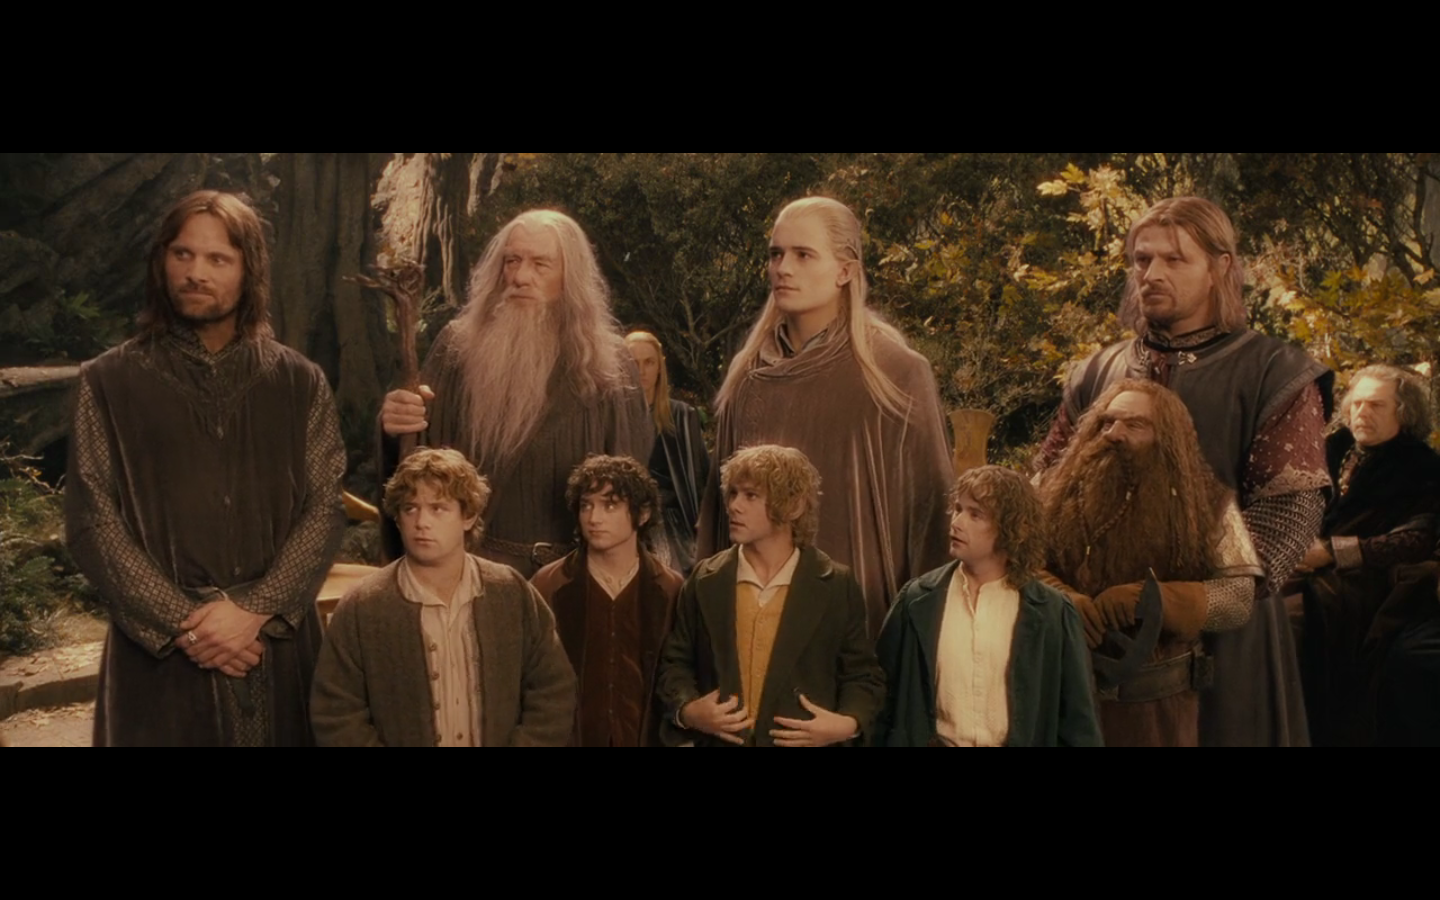 https://bplusmovieblog.files.wordpress.com/2012/05/the-lord-of-the-rings-the-fellowship-of-the-ring-30.png